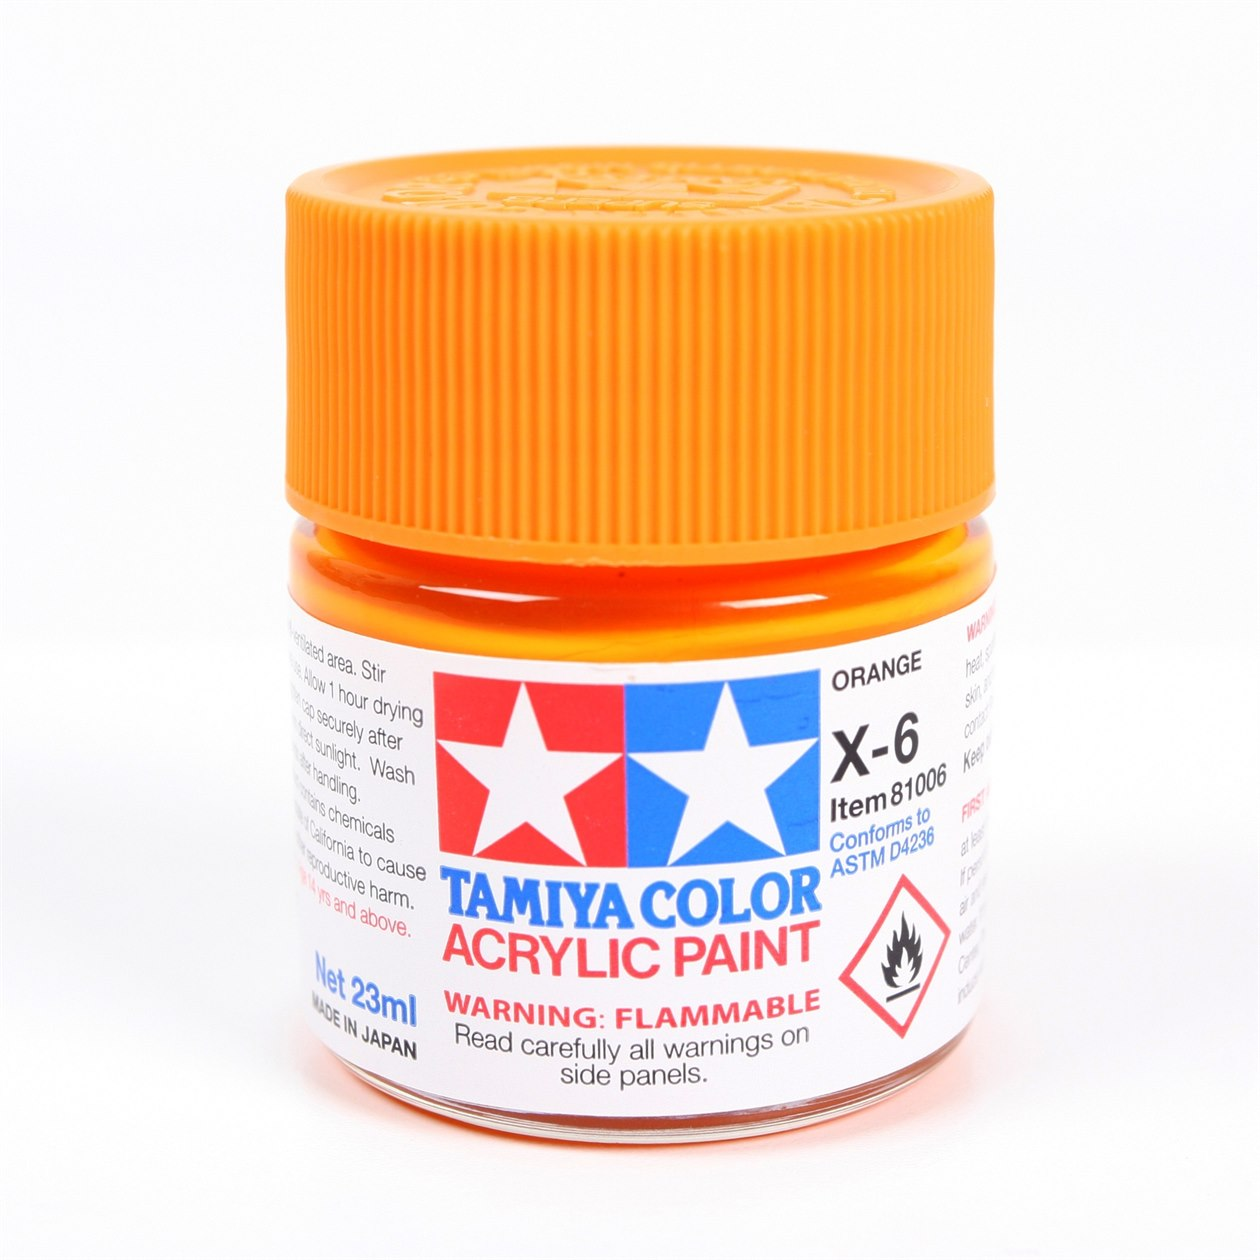 Tamiya Color Acrylic Paint X-6 (Orange) (23ml)